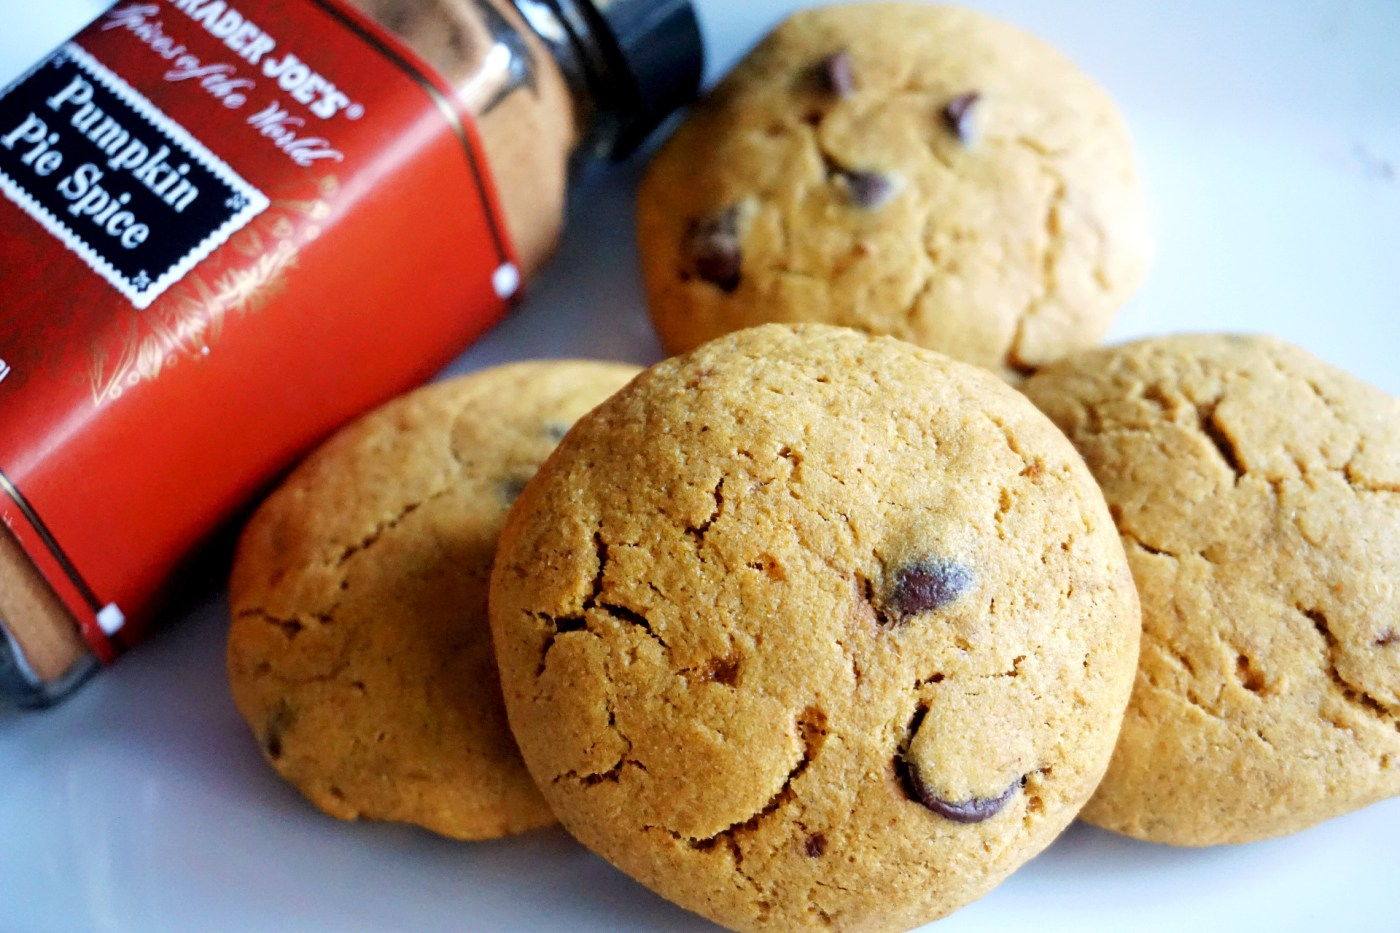 pumpkin cookies with spice bottle by side